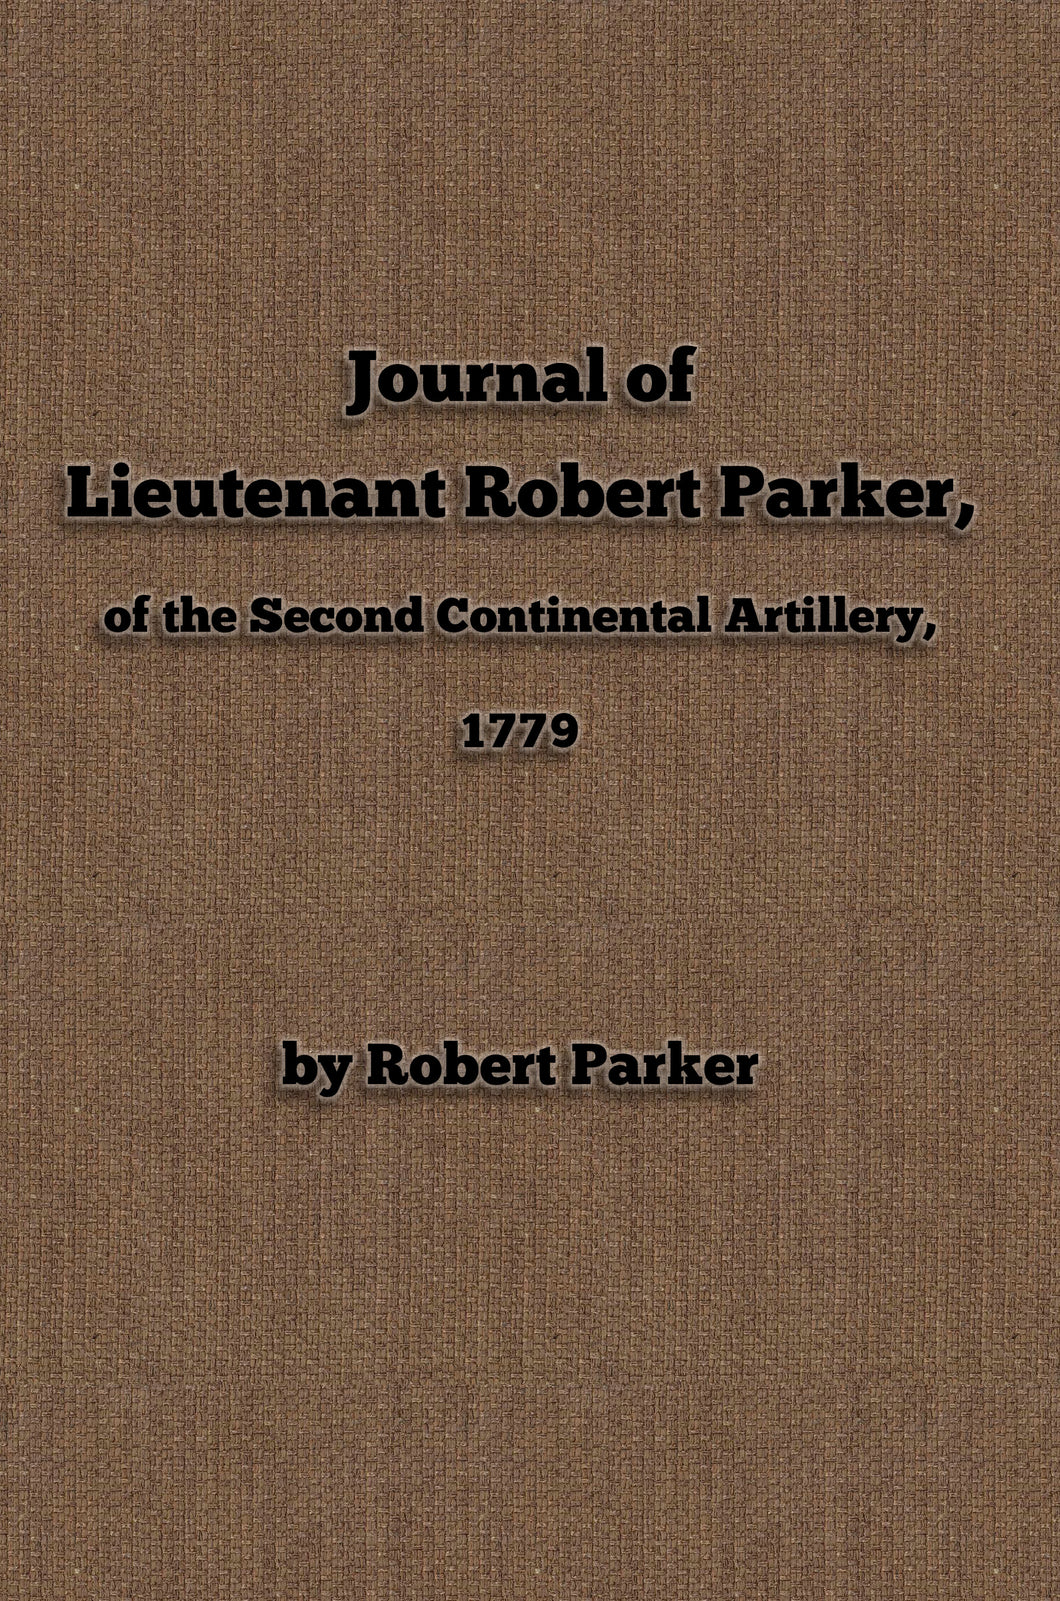 Journal of Lieutenant Robert Parker, of the Second Continental Artillery, 1779